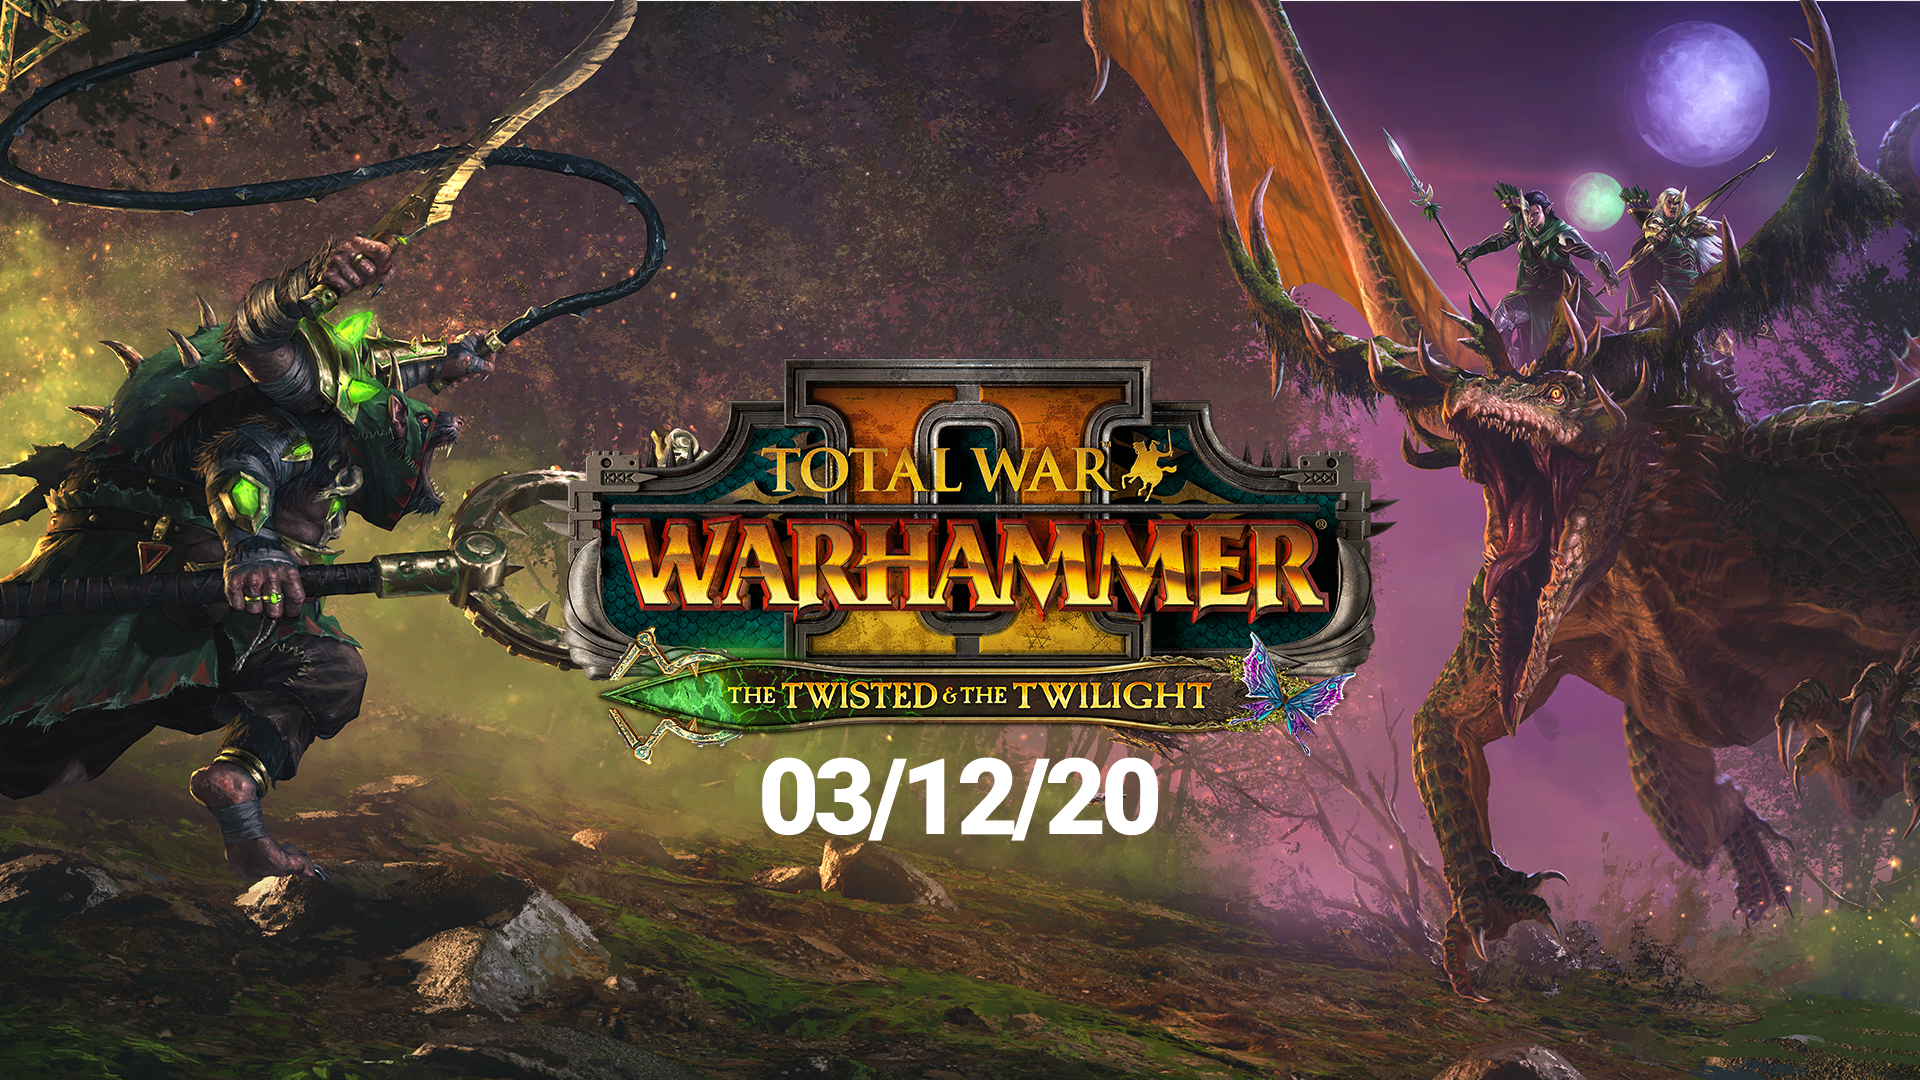 Announcing Total War: WARHAMMER II - The Twisted & The Twilight!